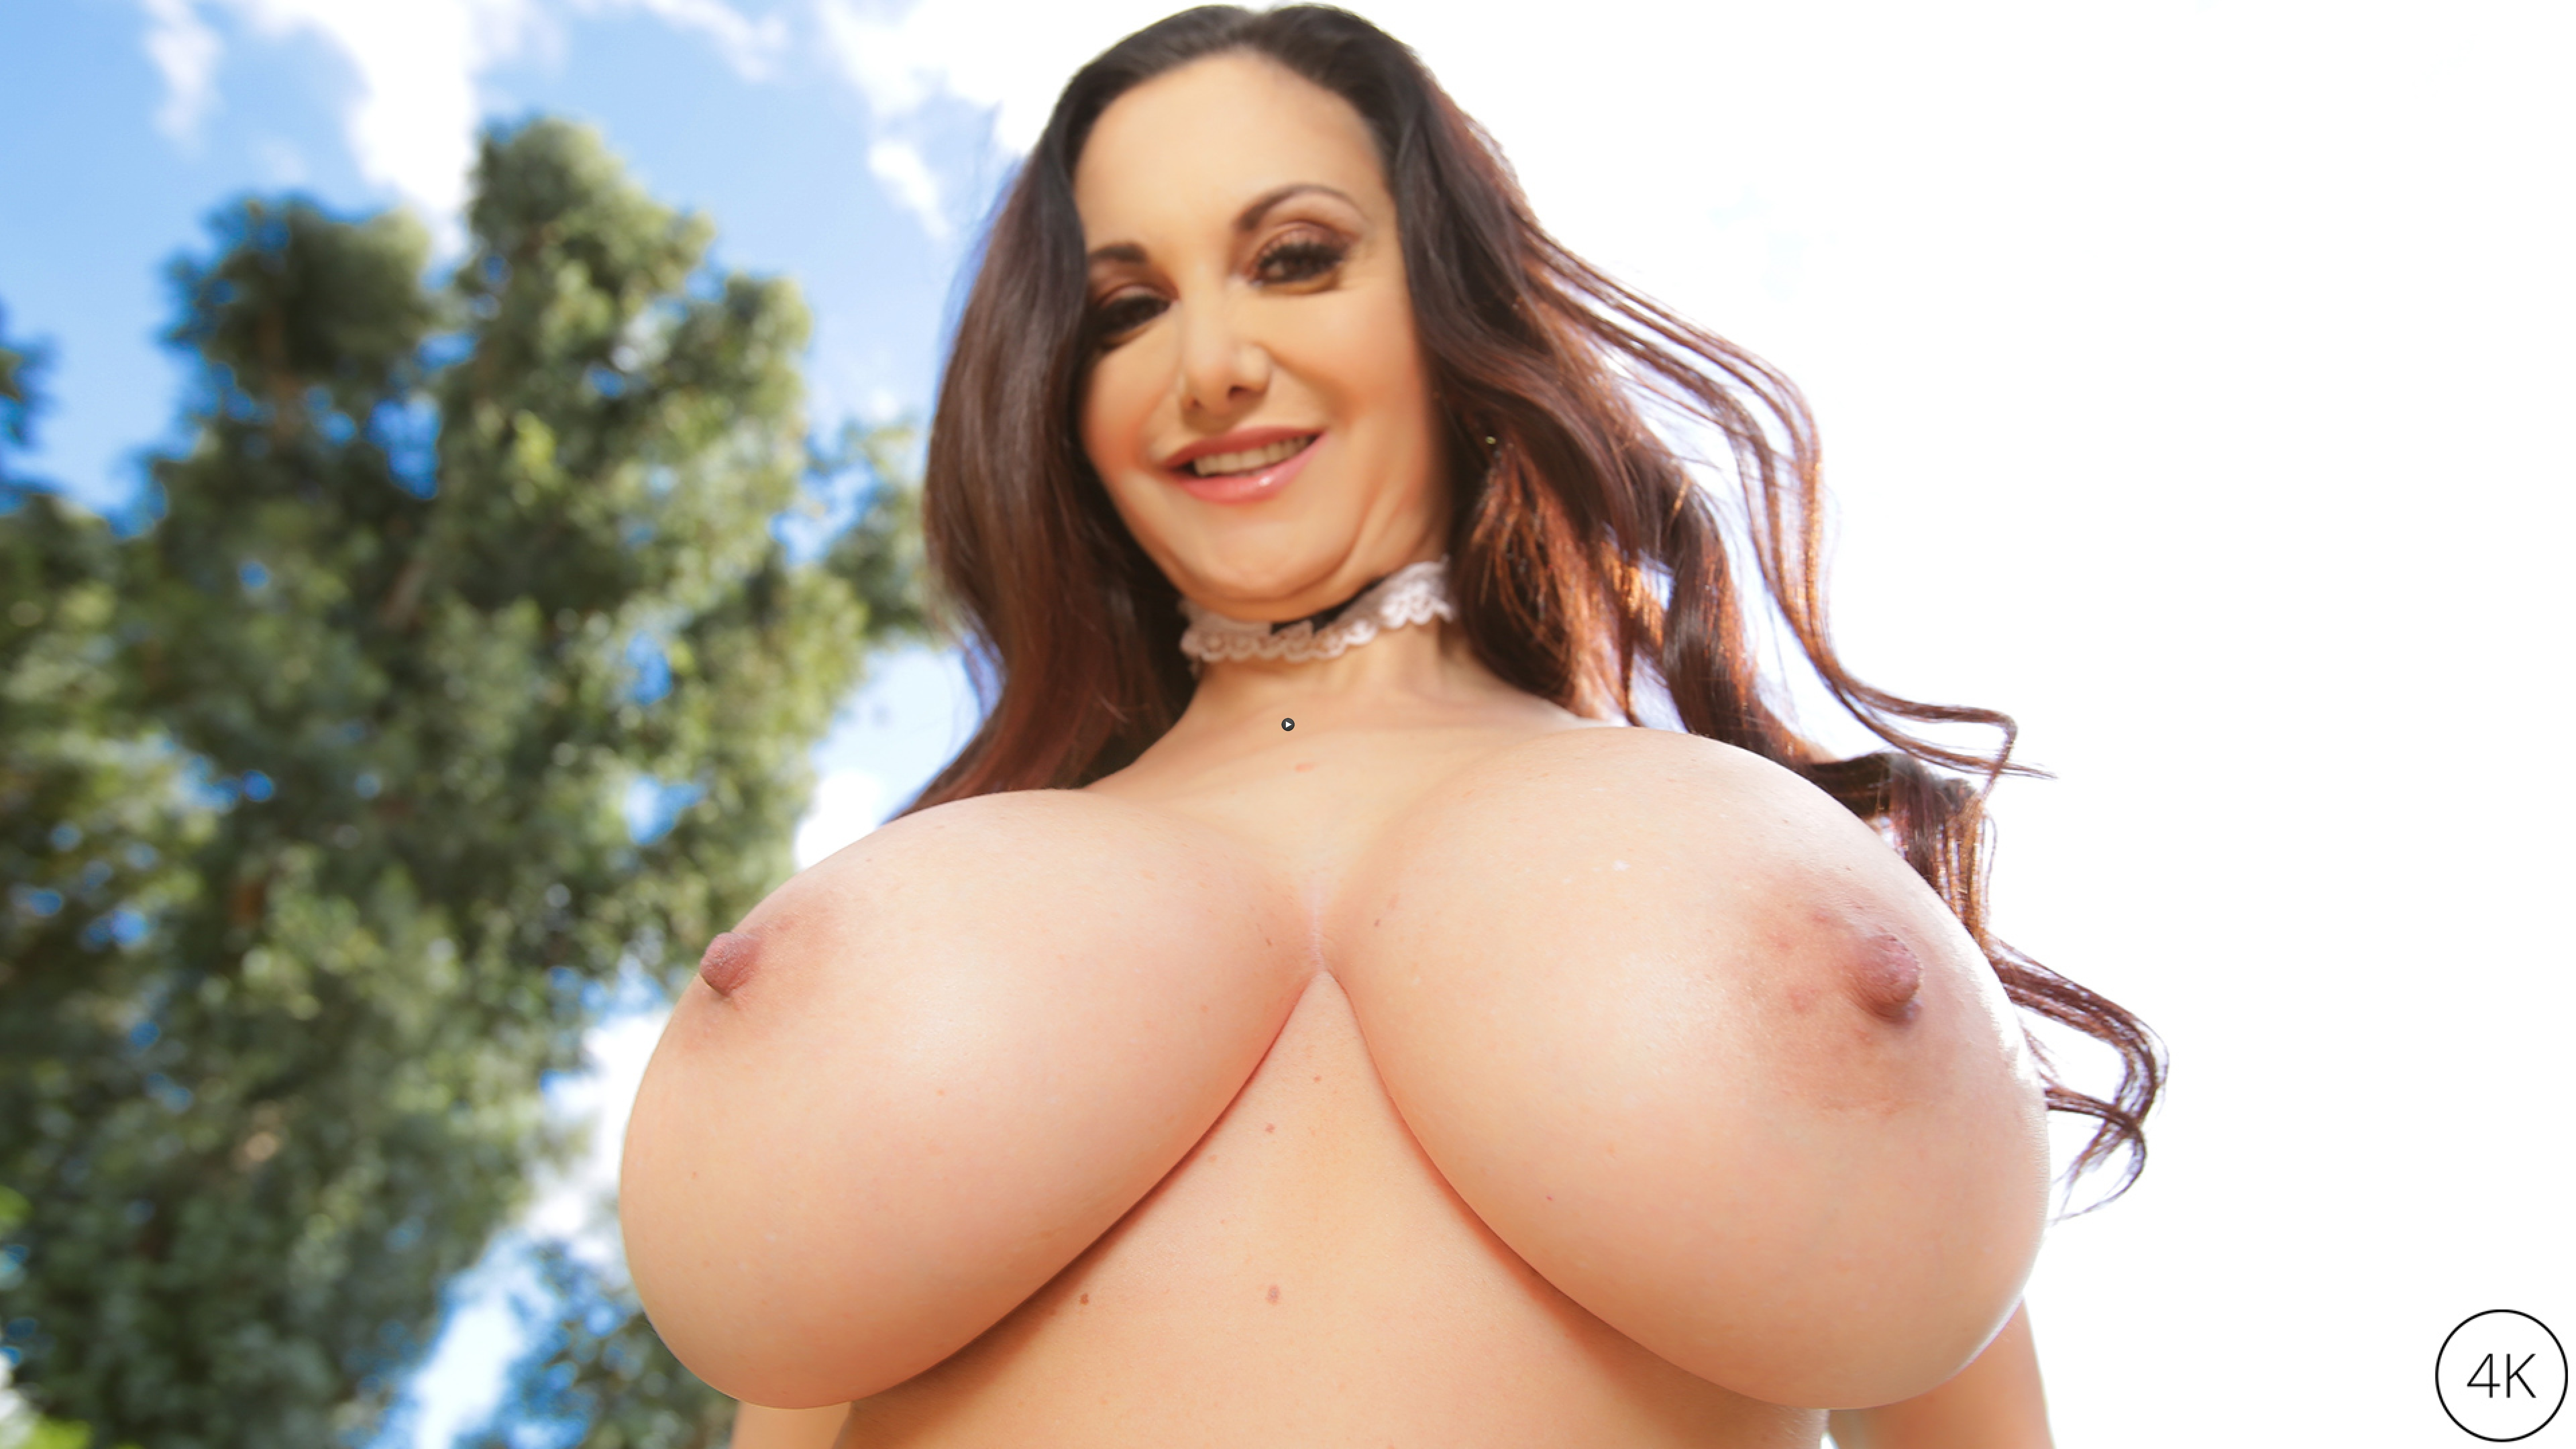 Watch Trailer Ava Addams, Ho Ho Ho Santa Brought Me Big Titties For Christmas